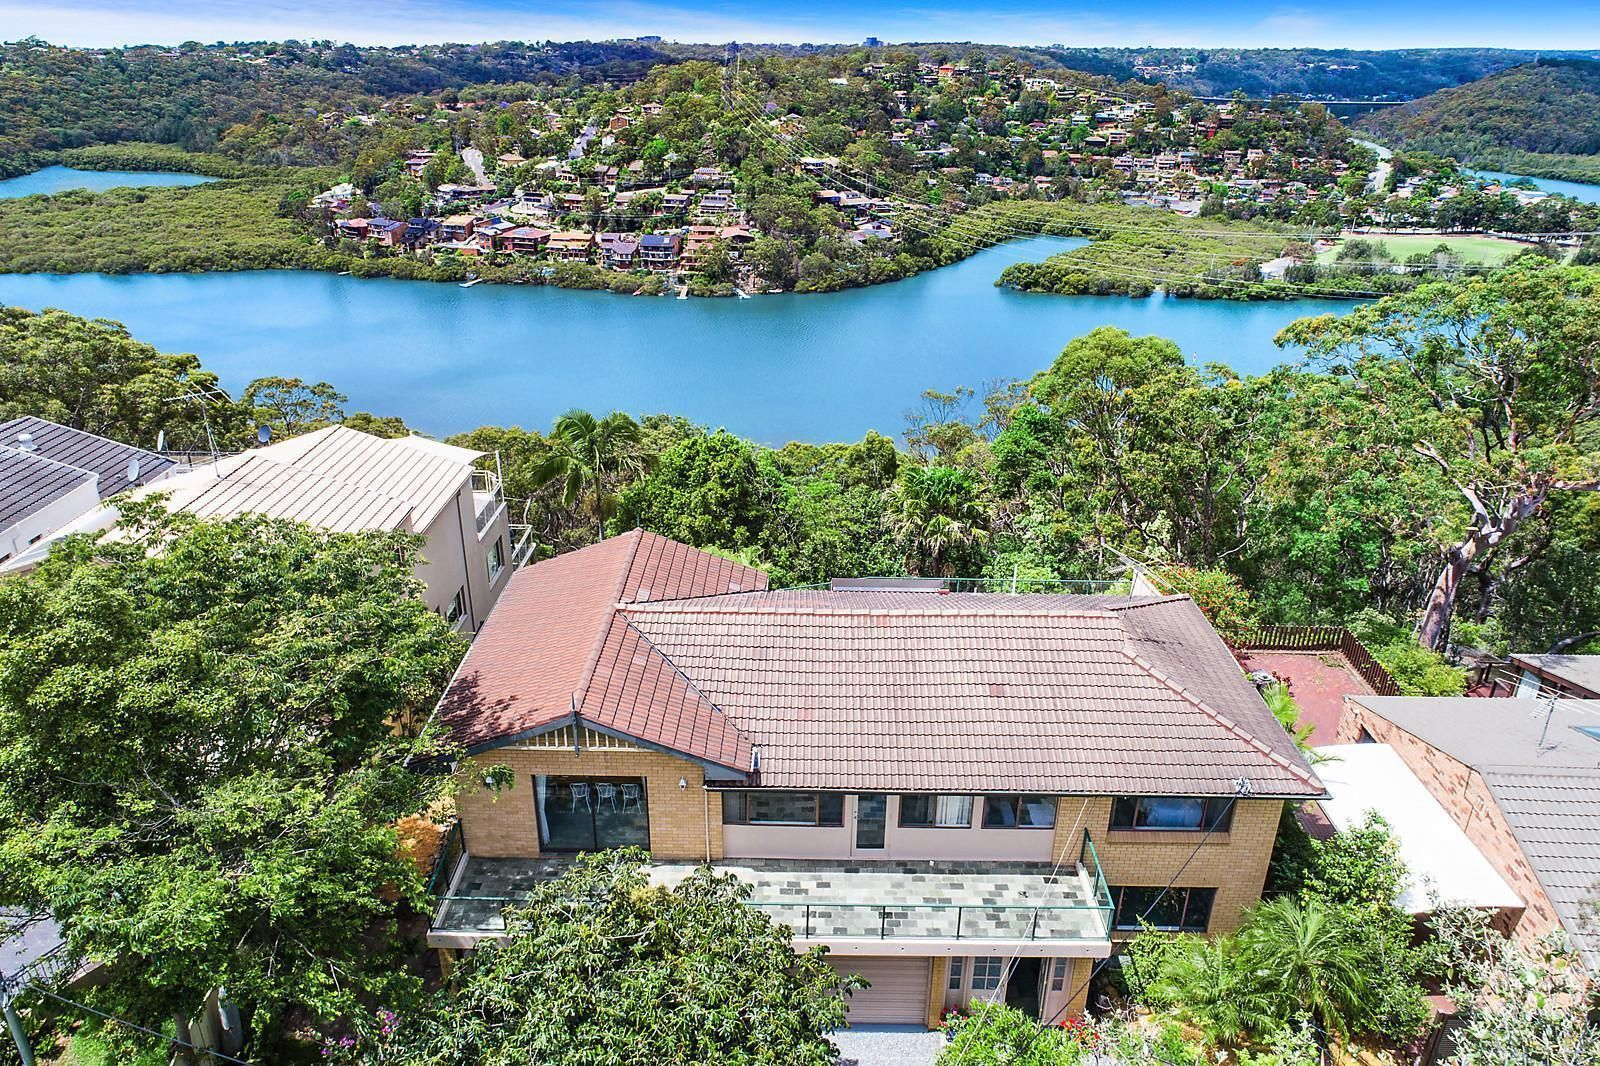 37-39 Sproule Road, Illawong NSW 2234, Image 1